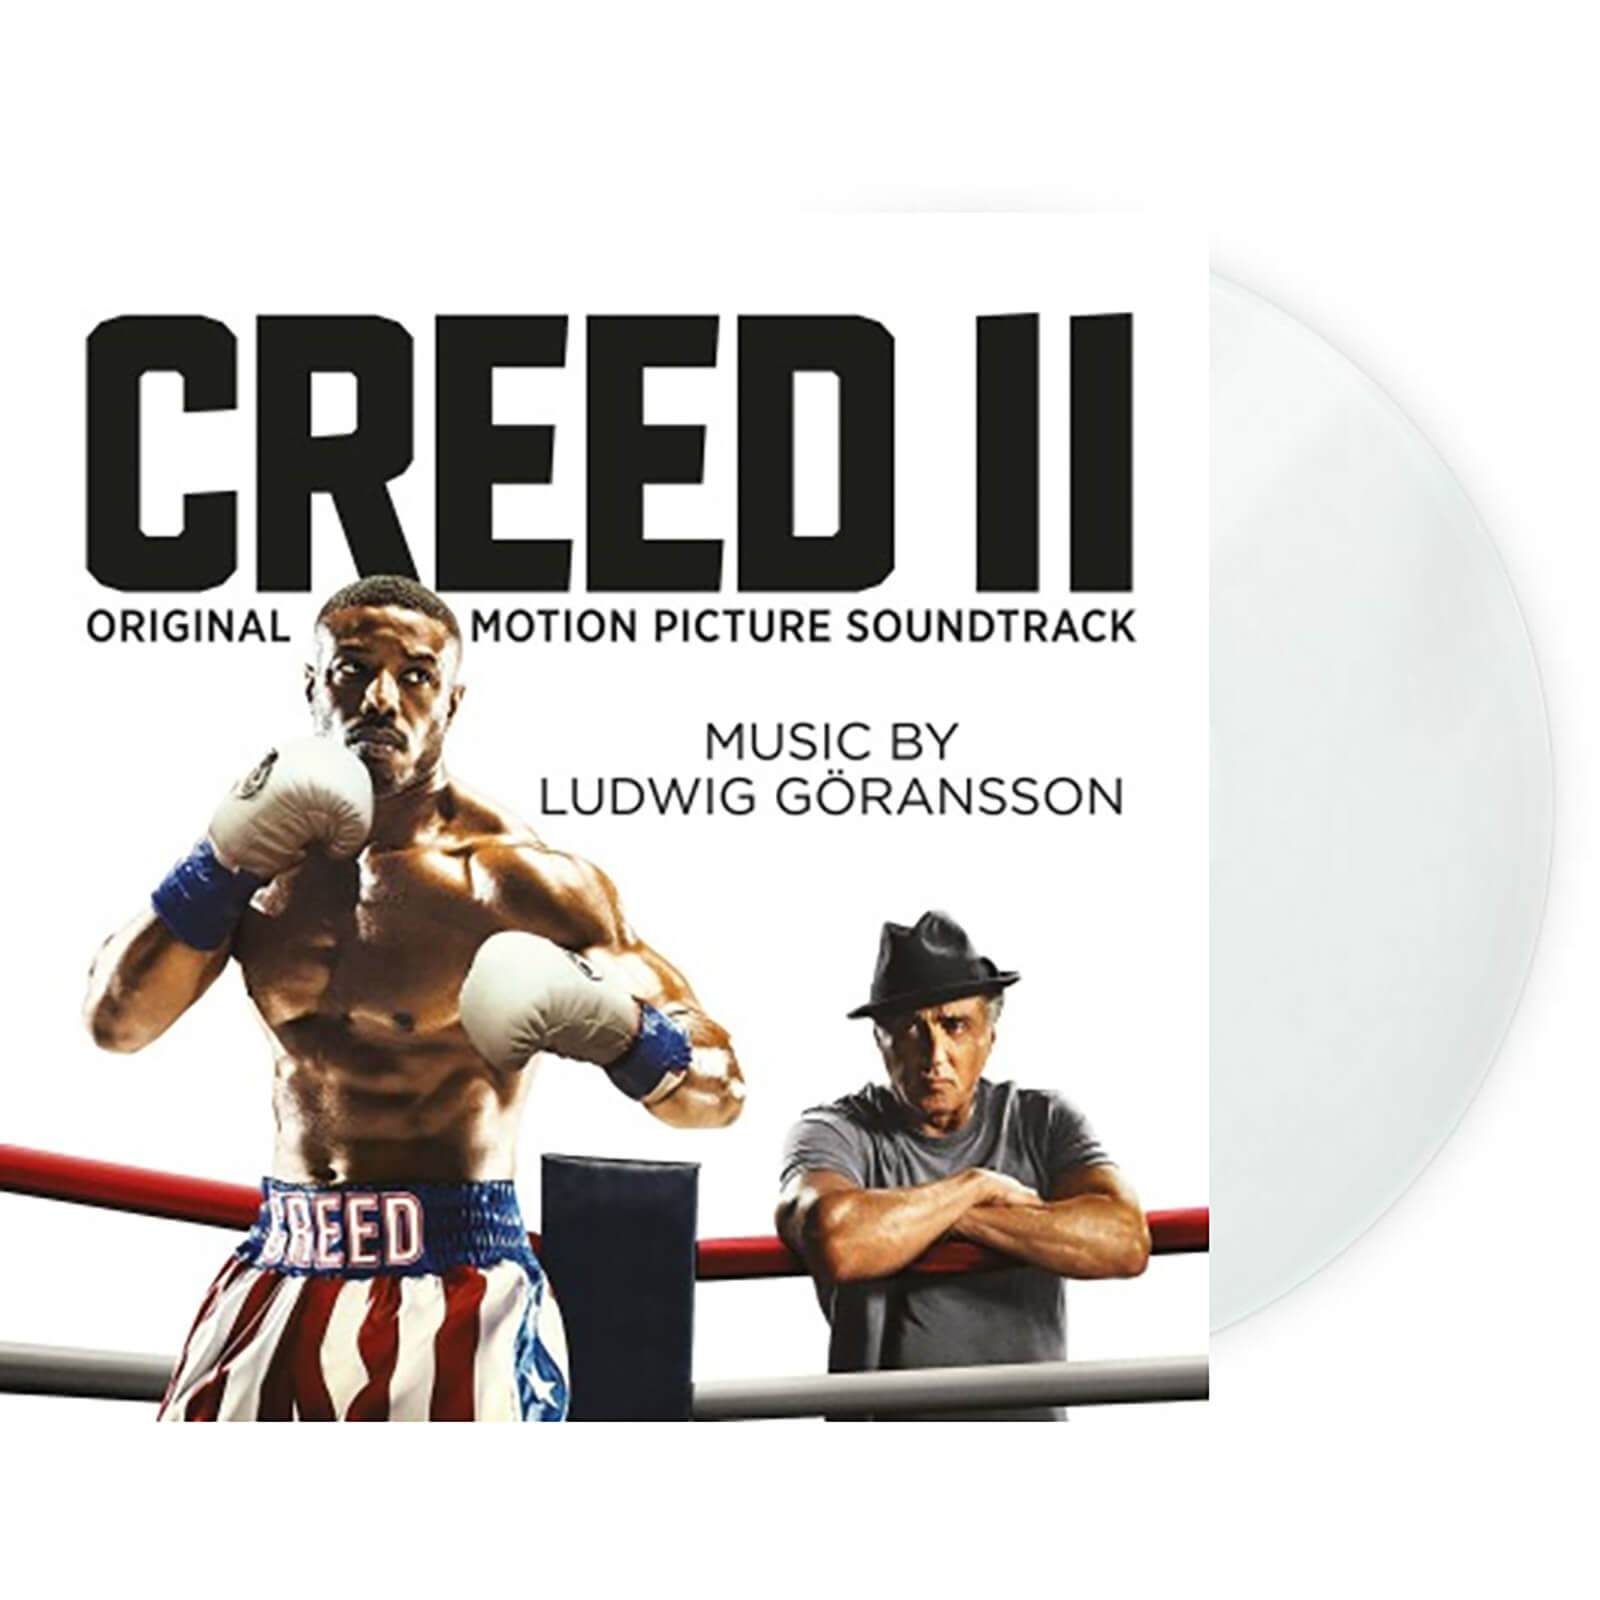 Music On Vinyl: At The Movies Ludwig Goransson - Creed II [LP] (LIMITED WHITE 180 Gram Audiophile Vinyl, PVC sleeve, mini-poster, sticker sleeve, numbered to 500)